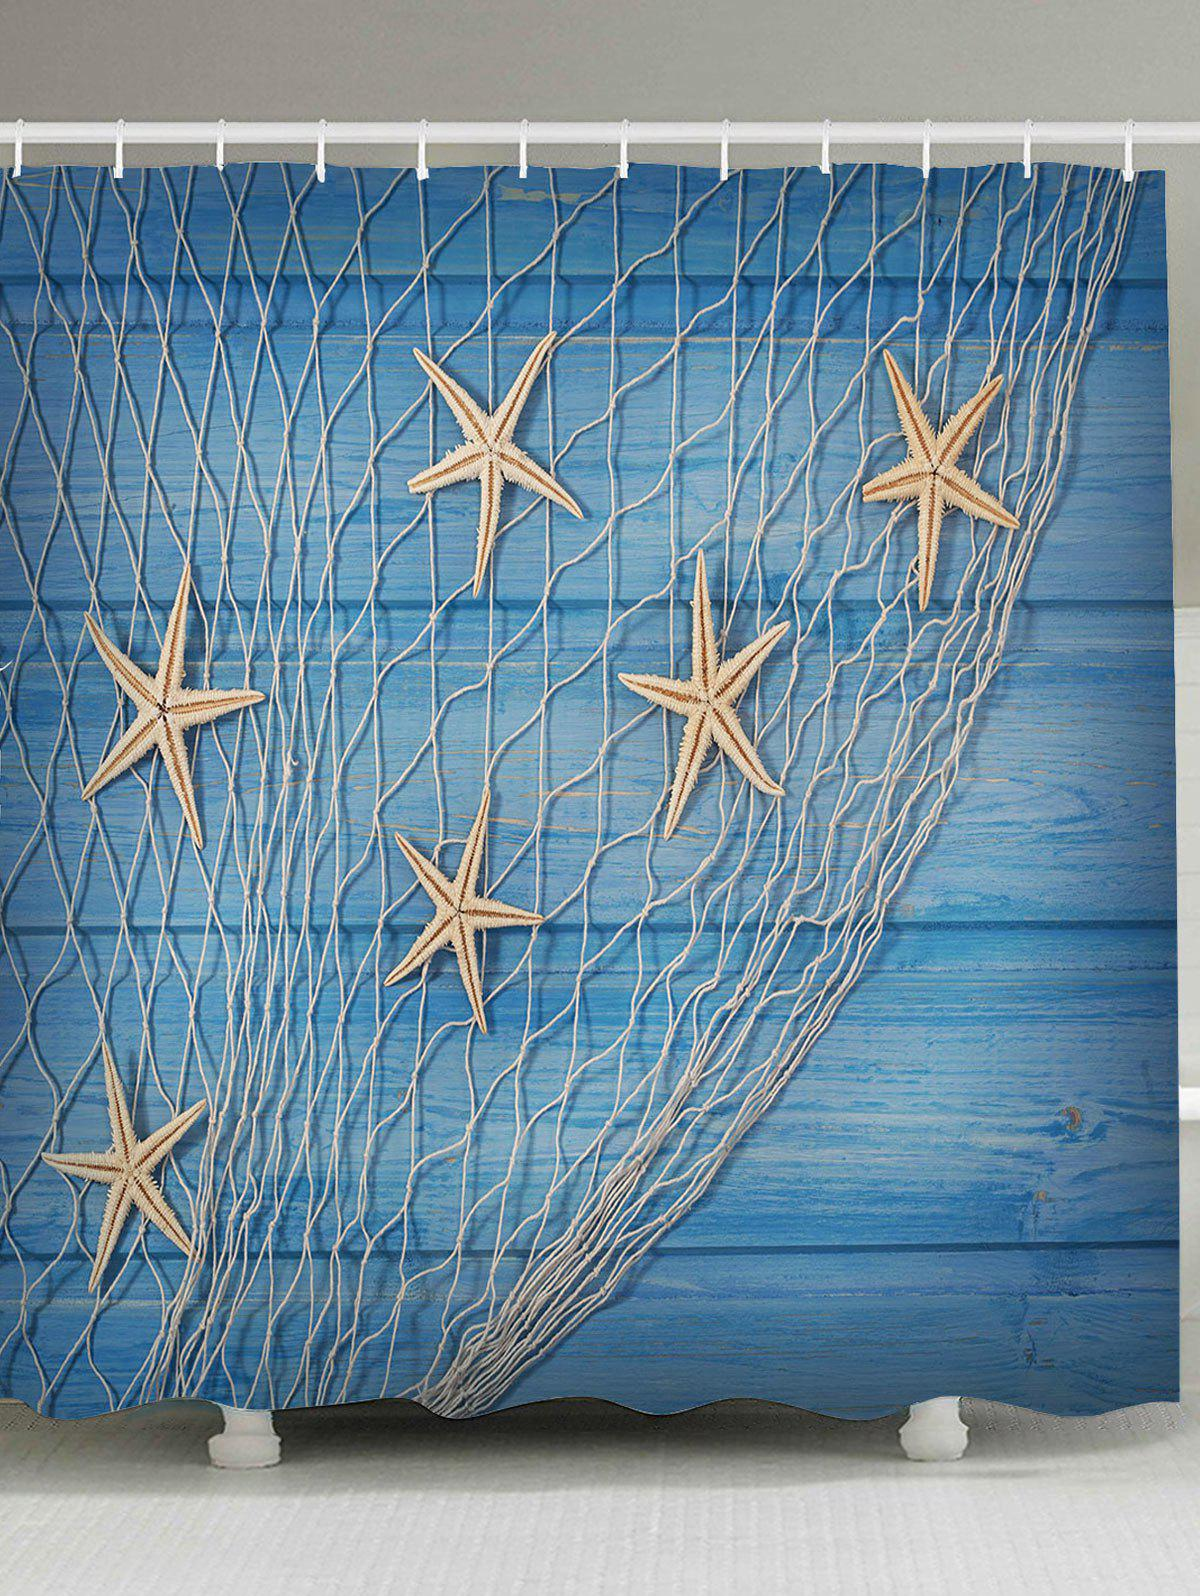 Starfish Fishing Net Wood Grain Nautical Shower Curtain vintage wood grain bark waterproof shower curtain